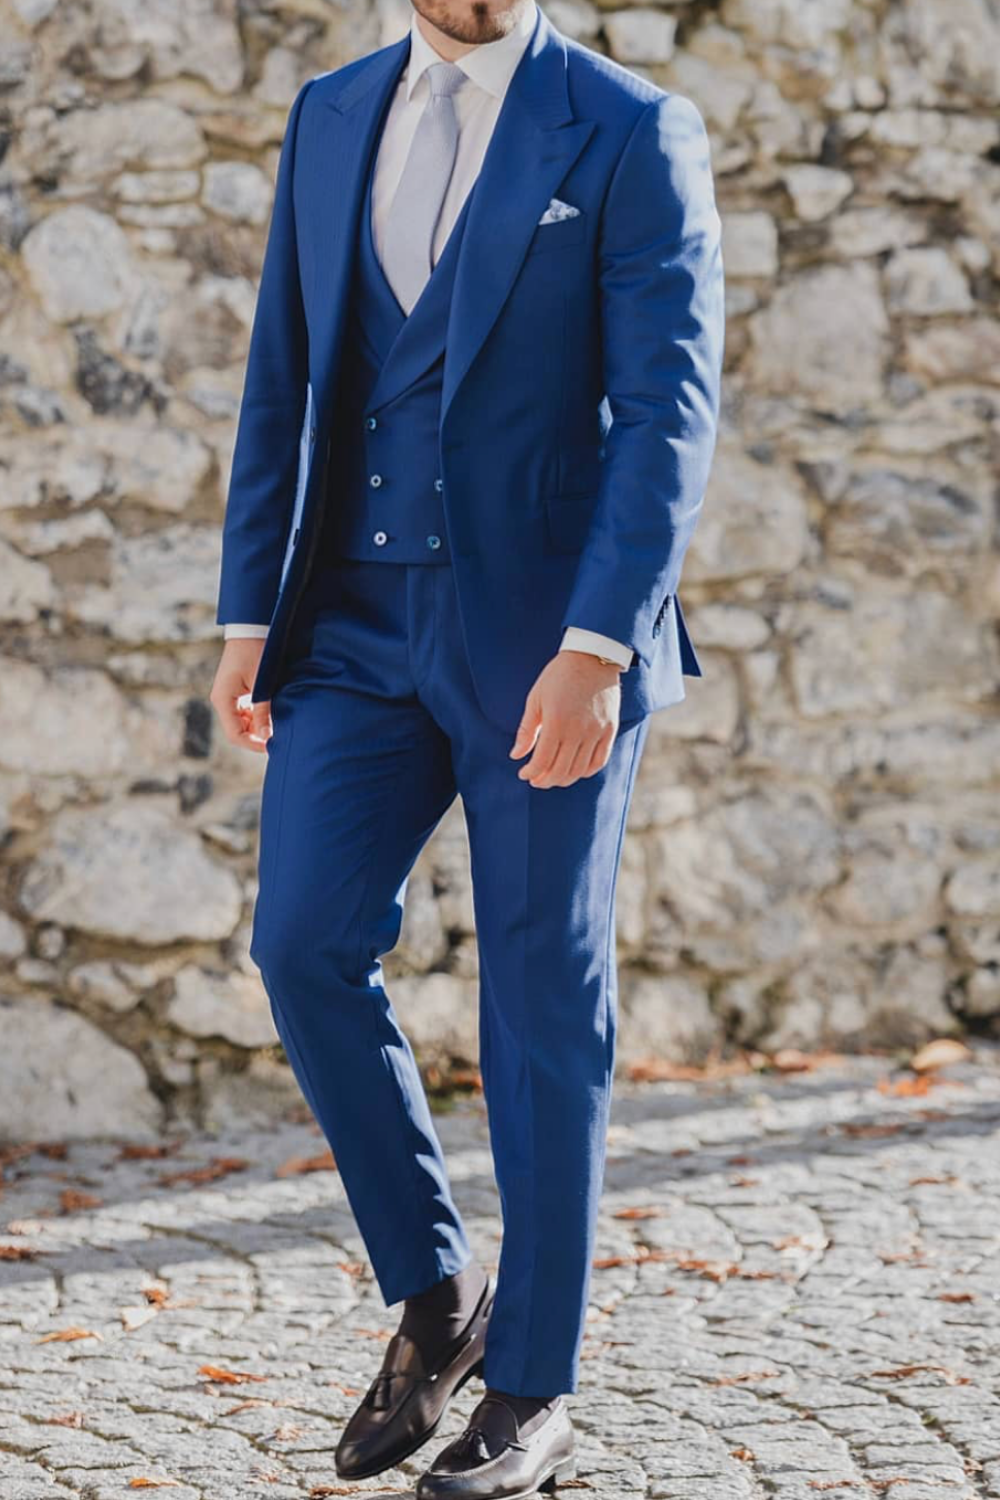 Men's Blue Three Piece Suit Outfit   Groom Style   Giorgenti ...